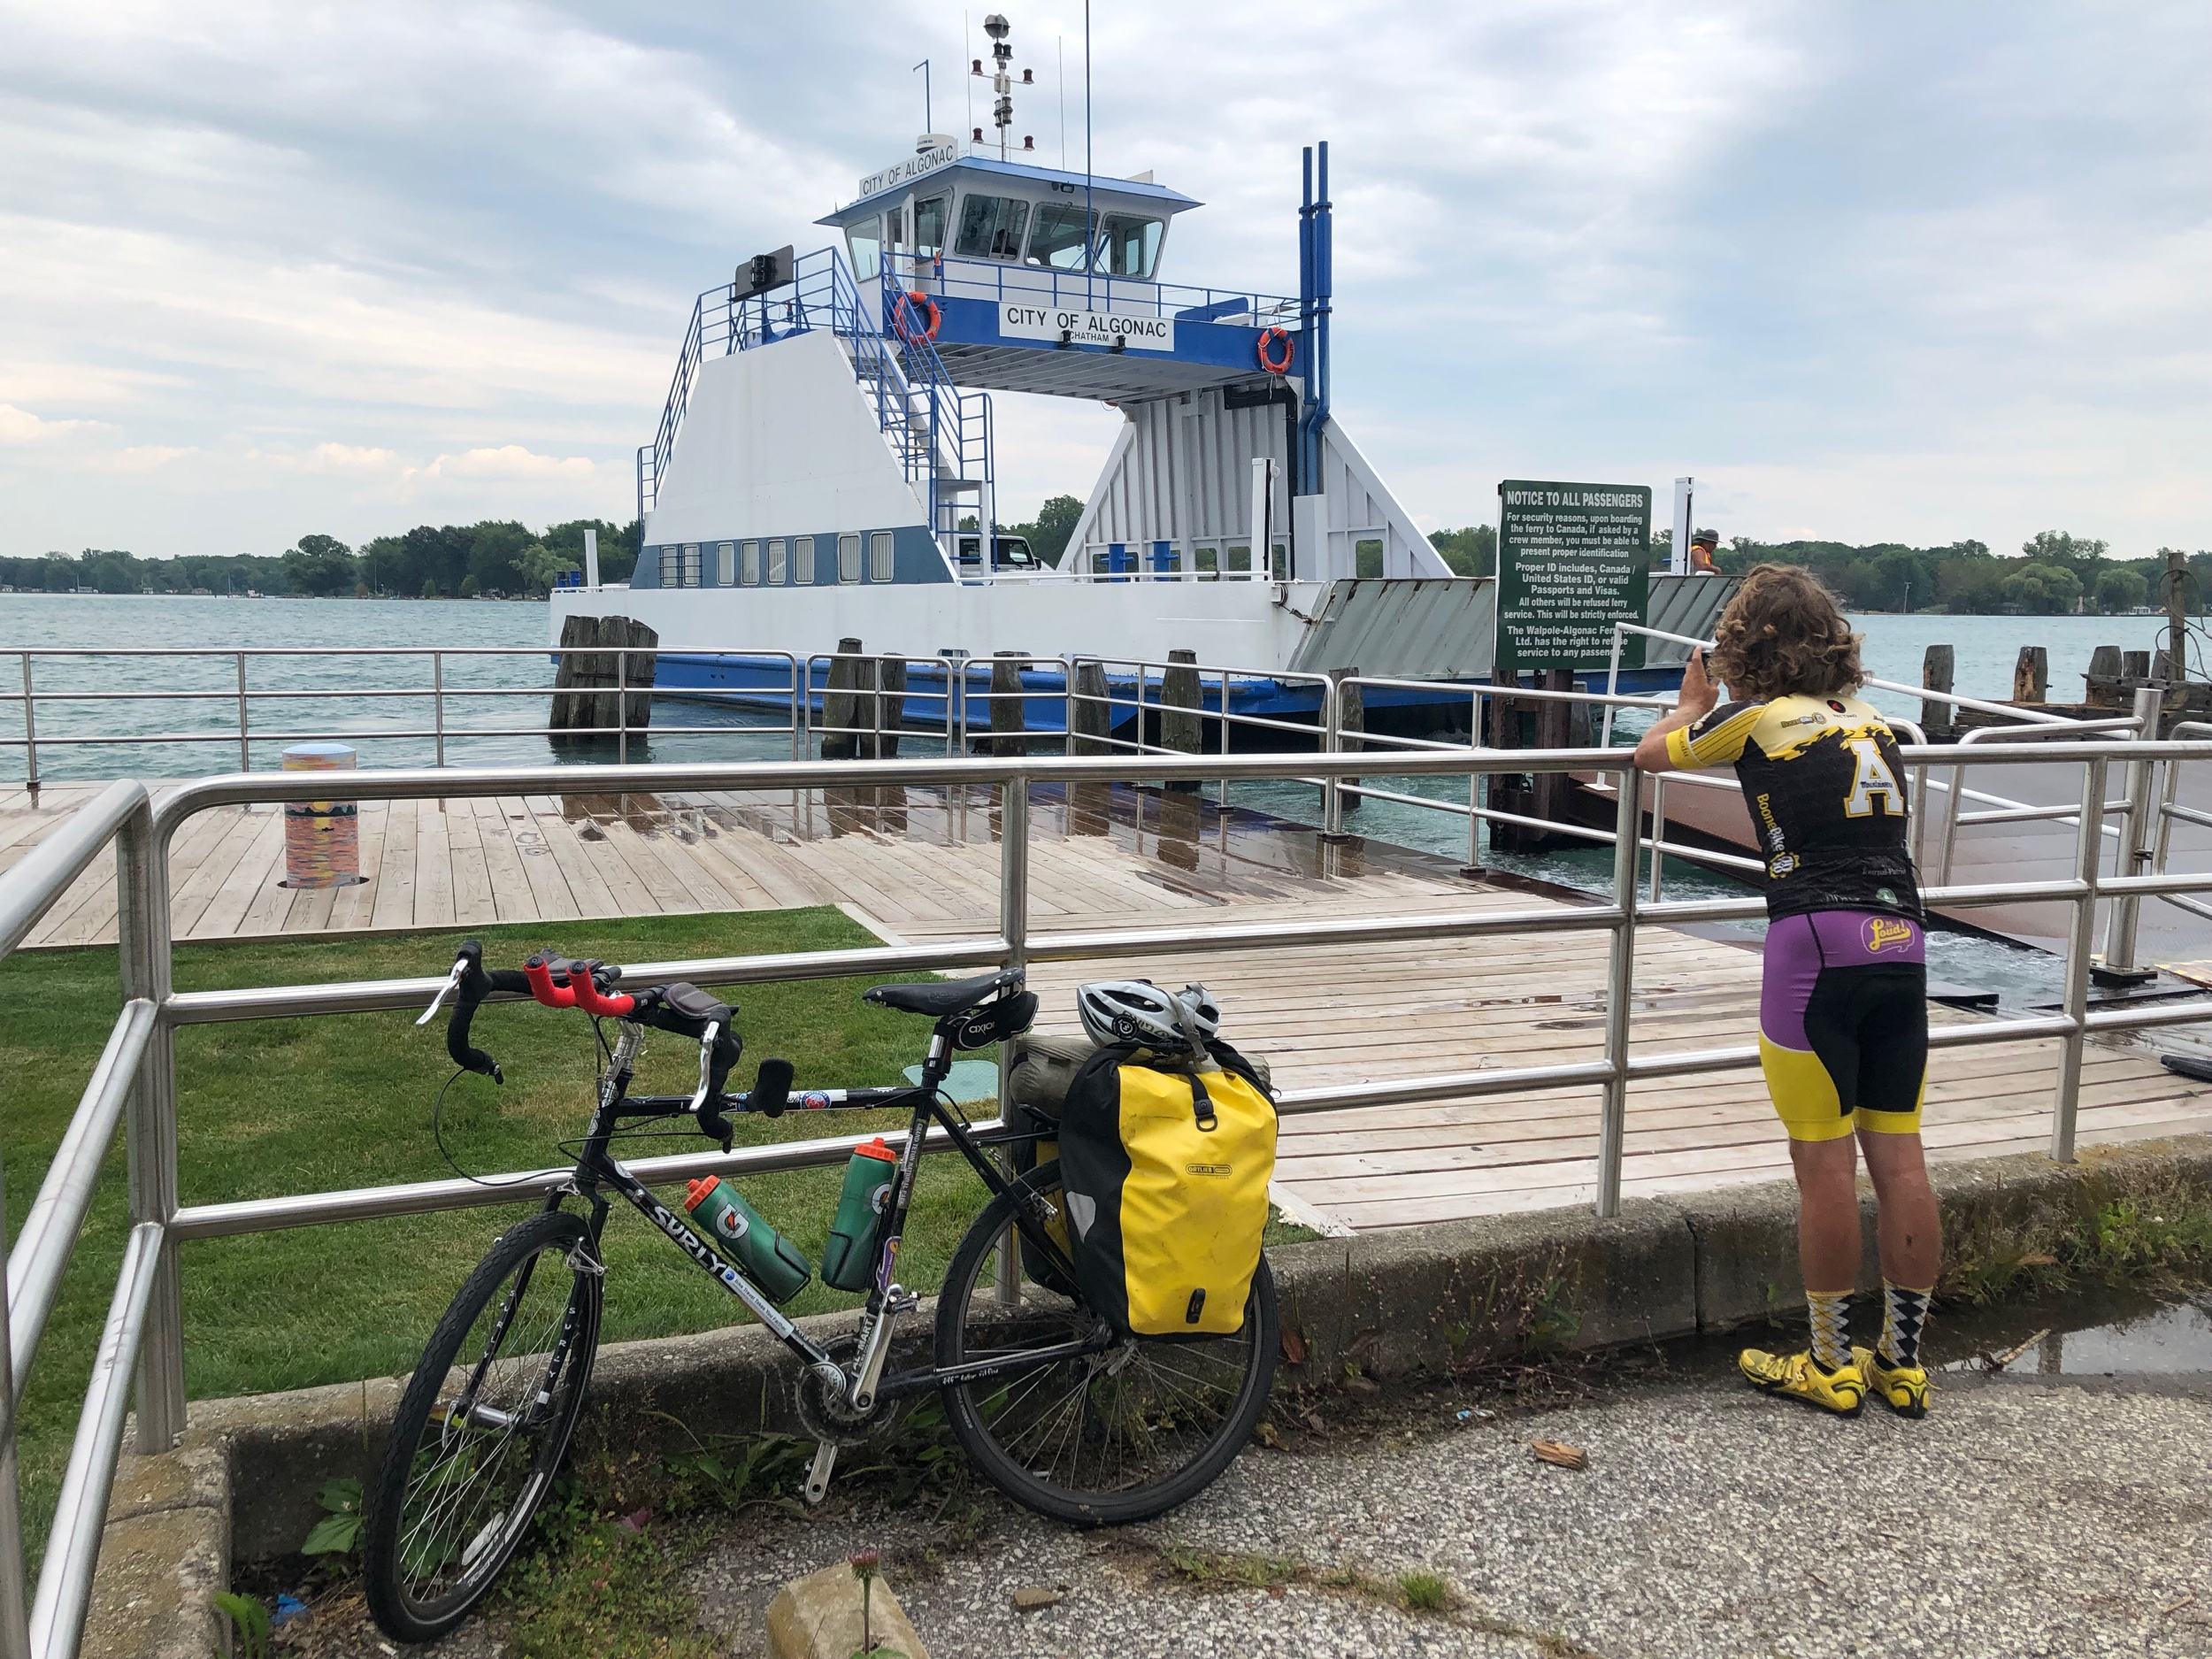 Ferry from Algonac, MI to Walpole, ON